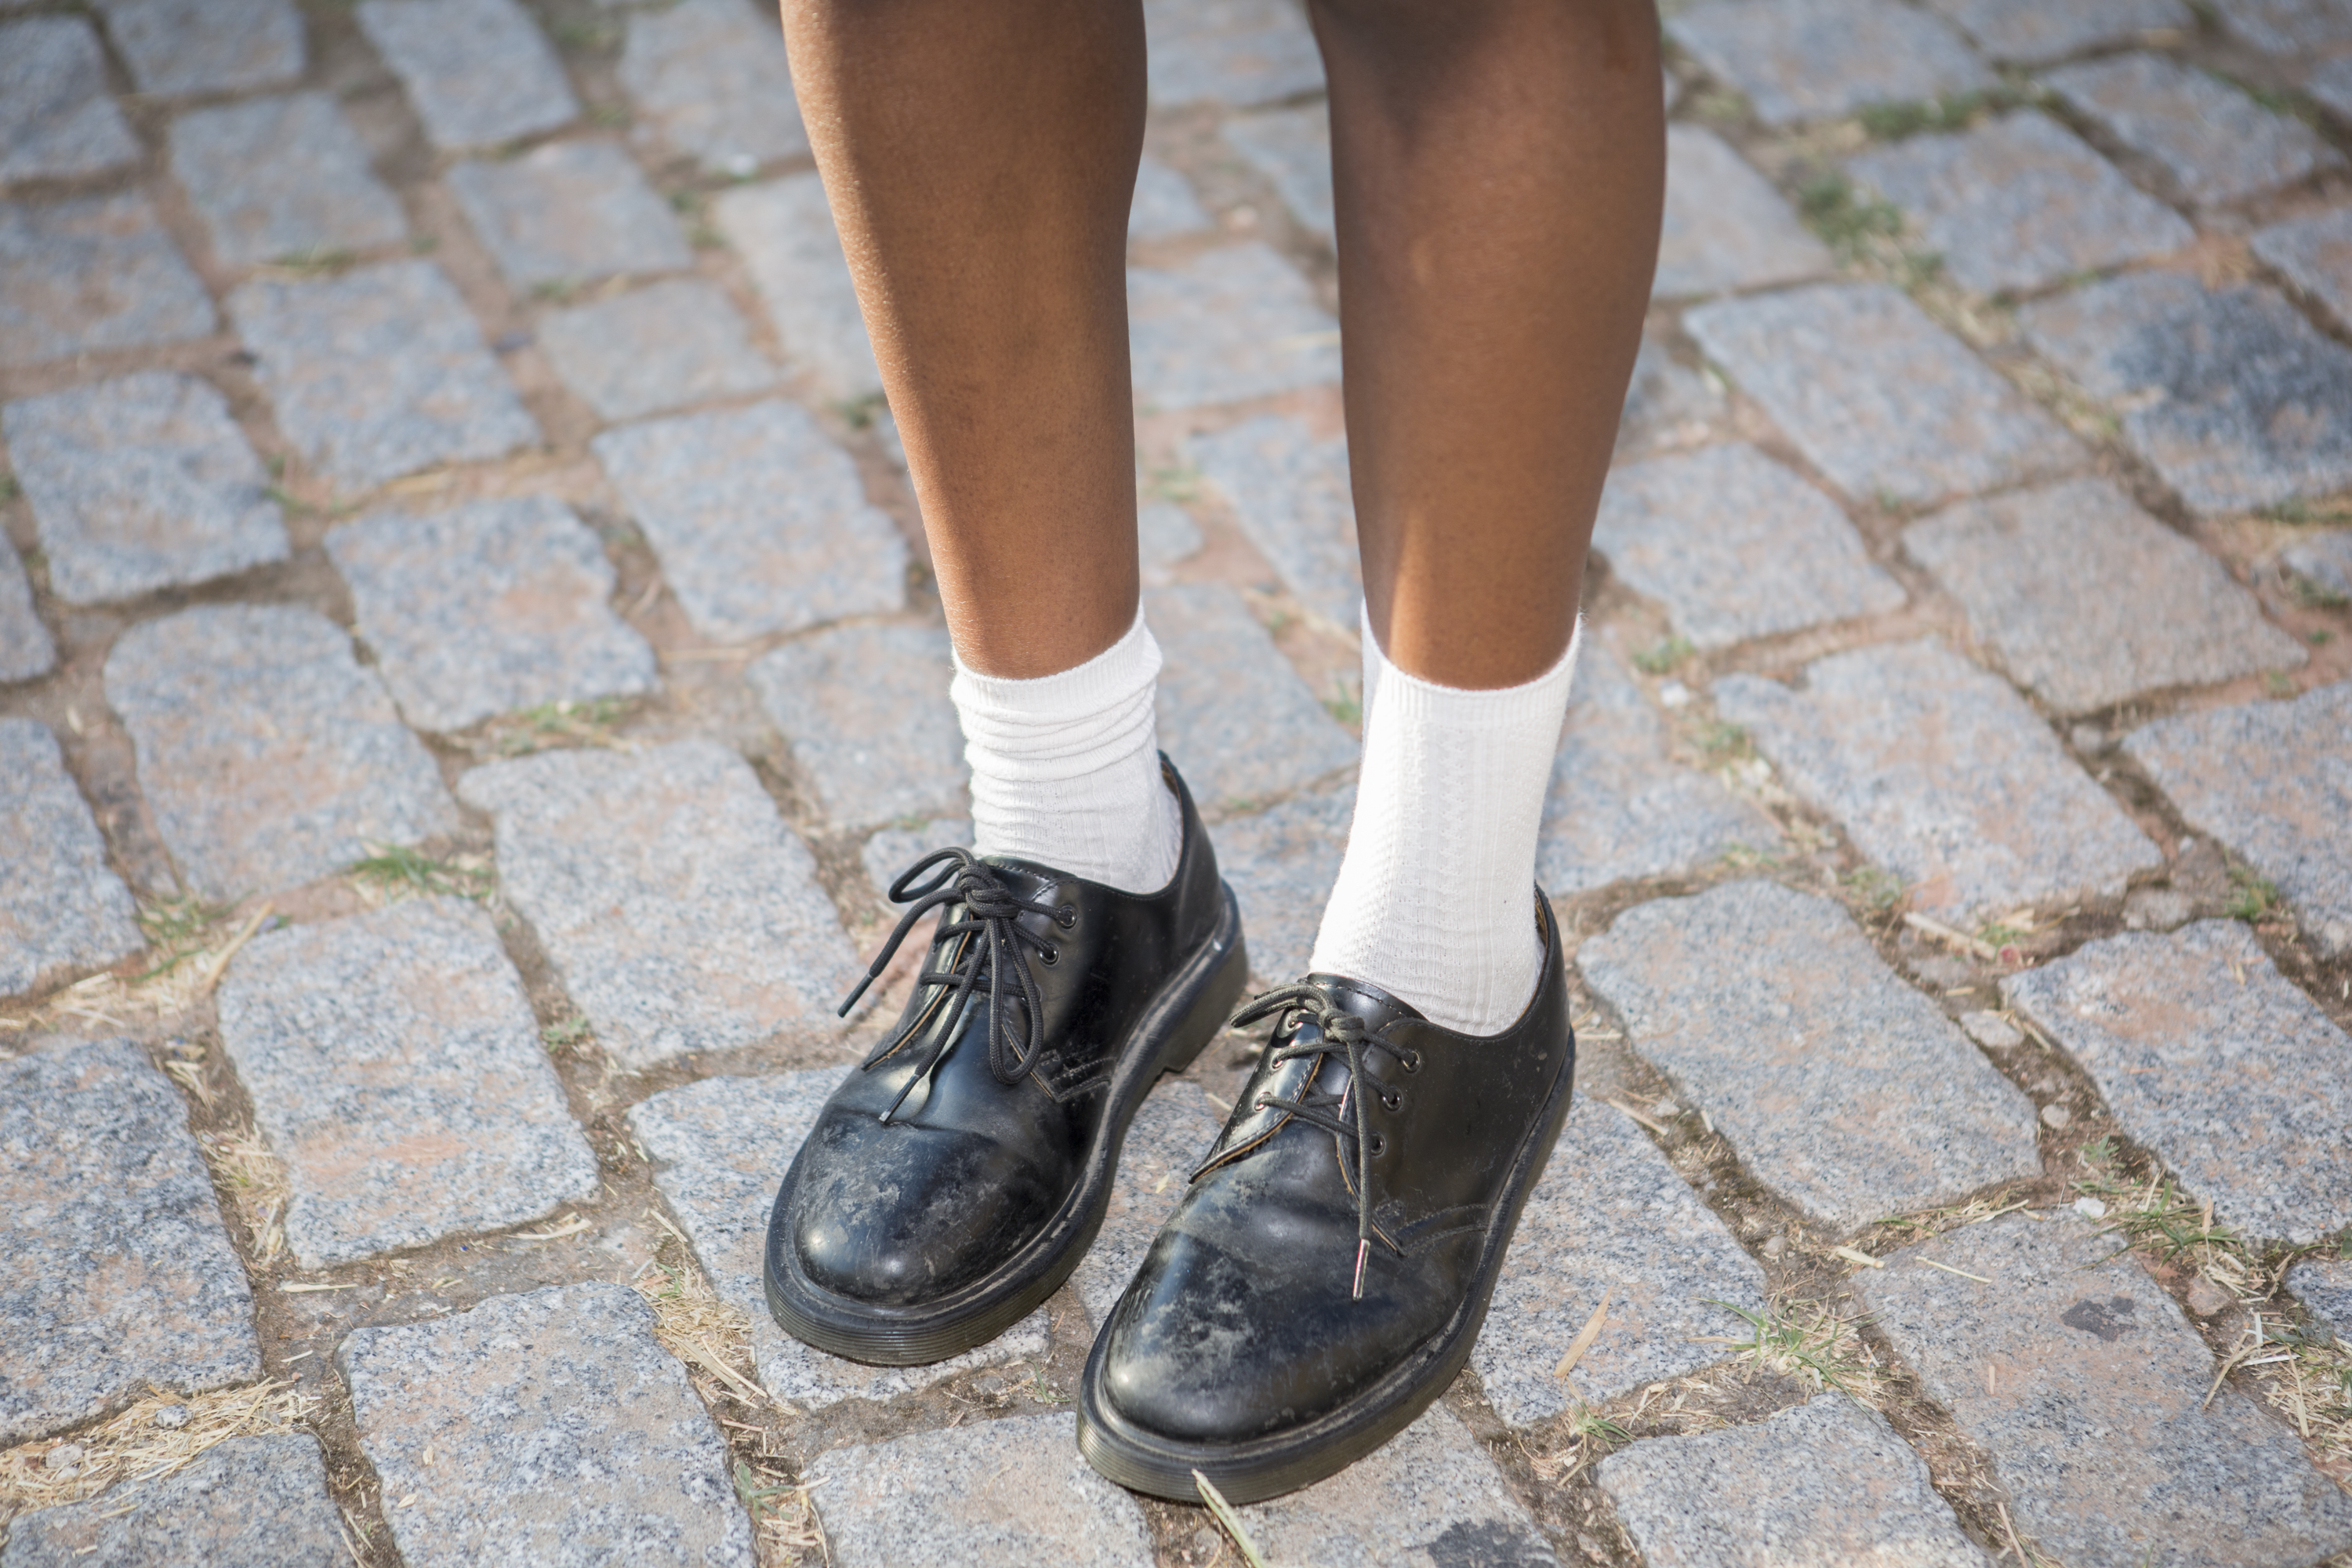 How to martens low doc wear